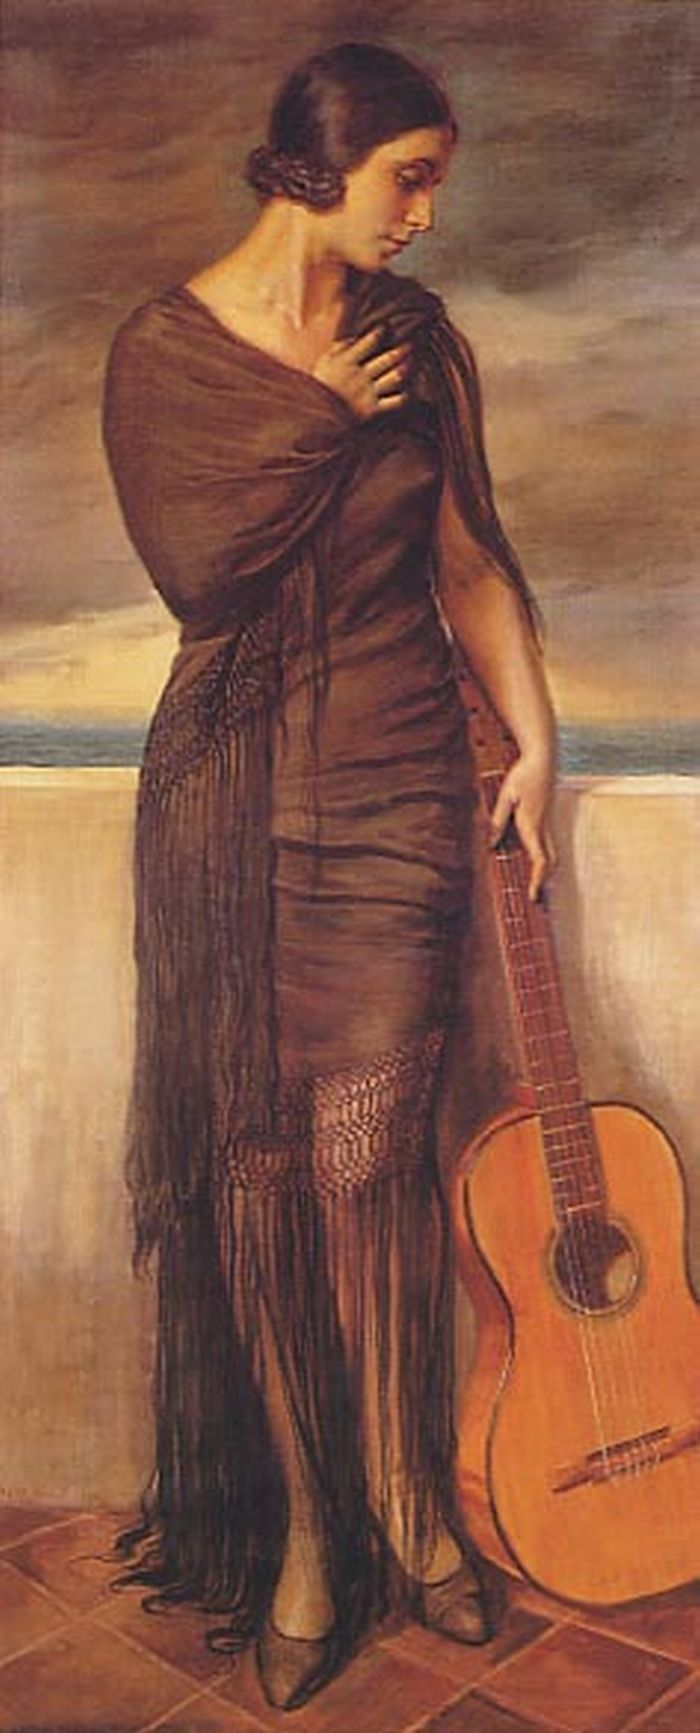 Cancion Malaguena : George Owen Wynne Apperley : Art Scans : Scanopia